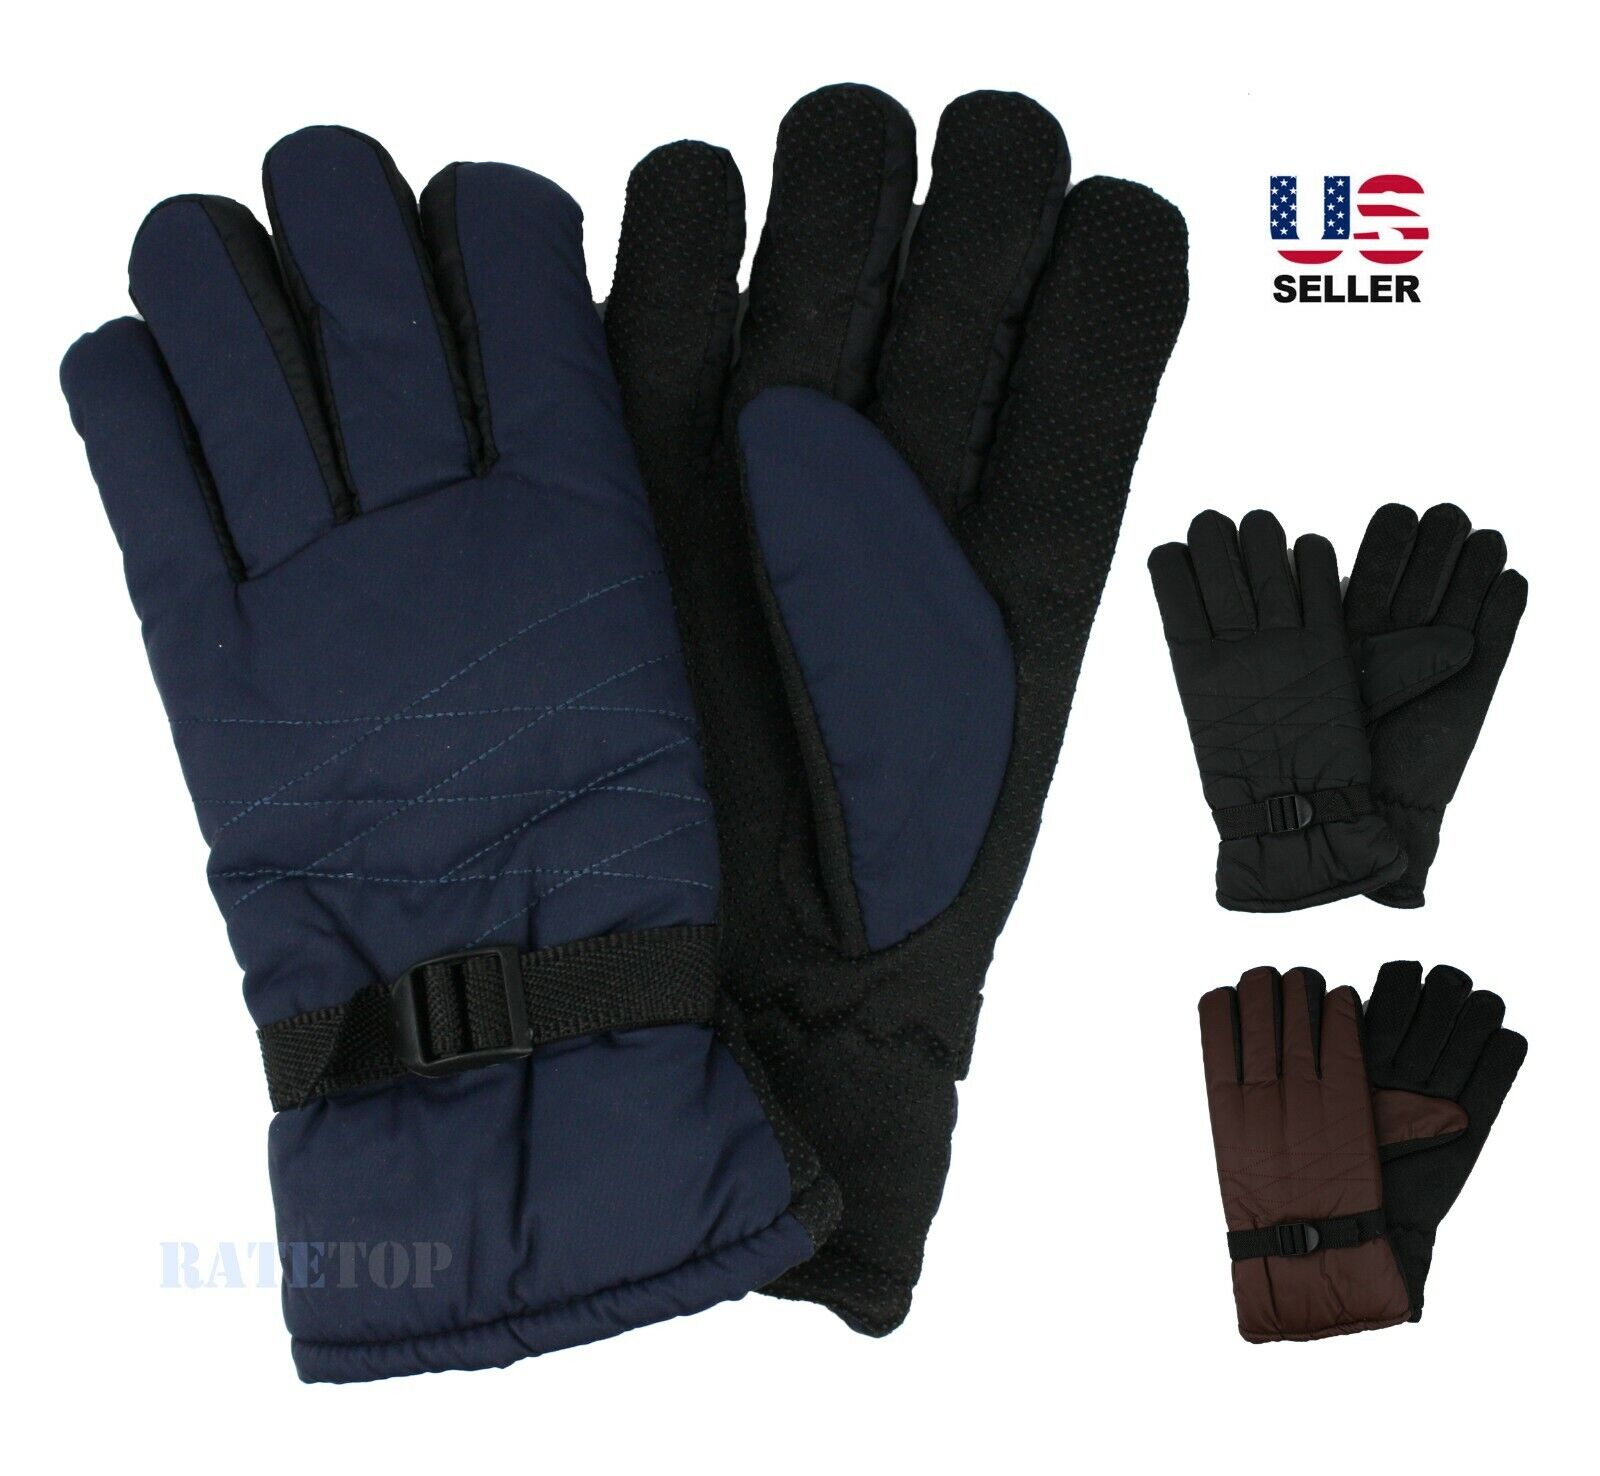 Mens Winter Thermal Thick Fleece Fur Lined Waterproof Snow Ski Gloves Mitten Clothing, Shoes & Accessories